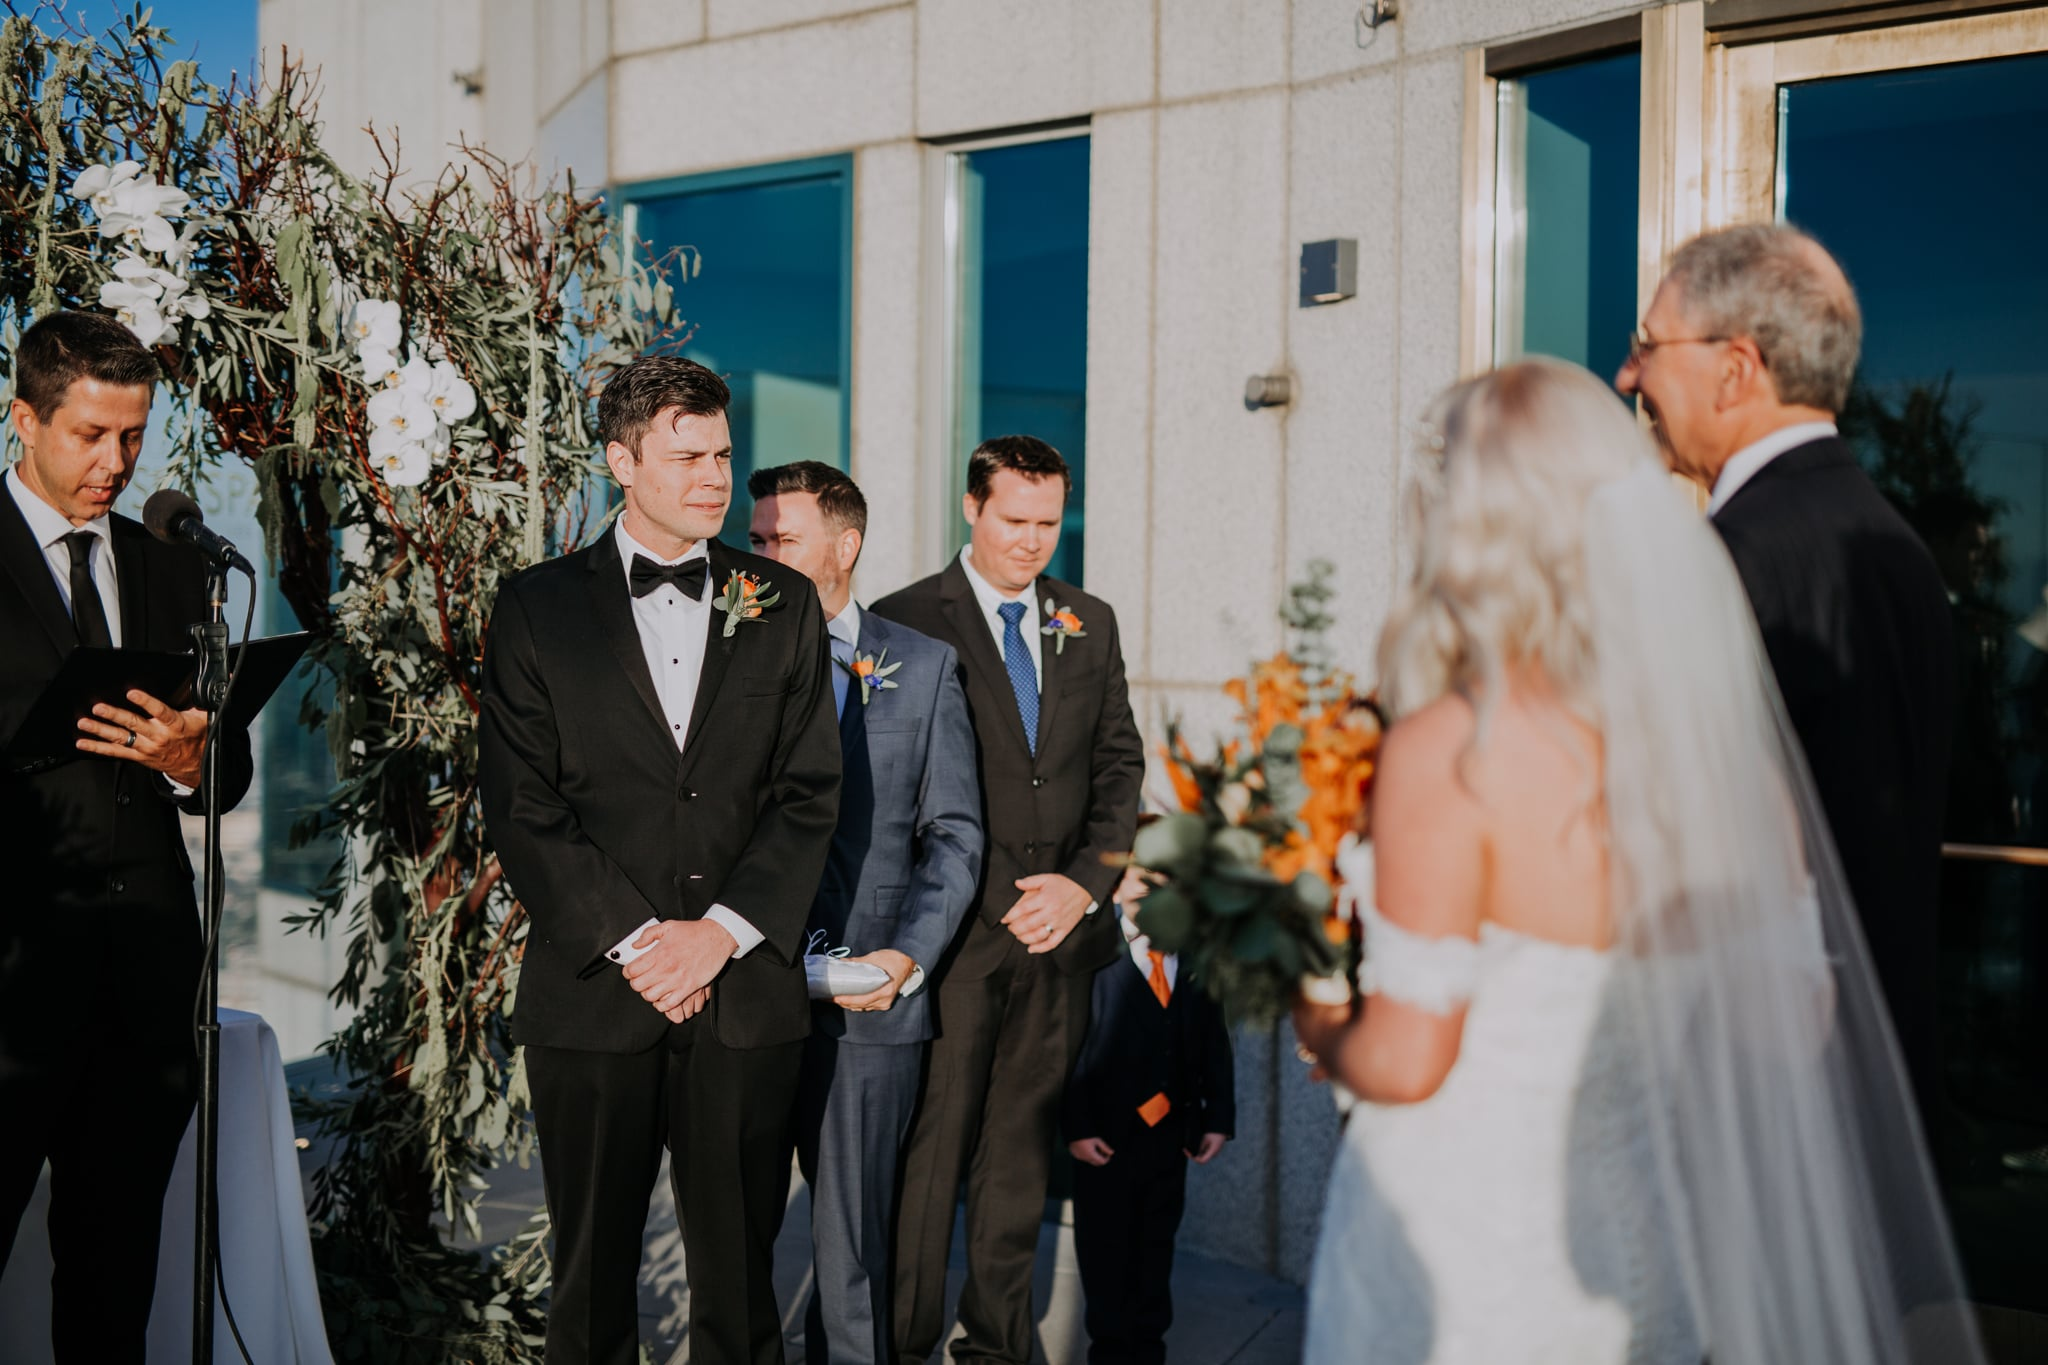 Love Sex Emotional Is An Understatement These First Look Wedding Photos Will Make You Swoon Popsugar Love Sex Photo 47